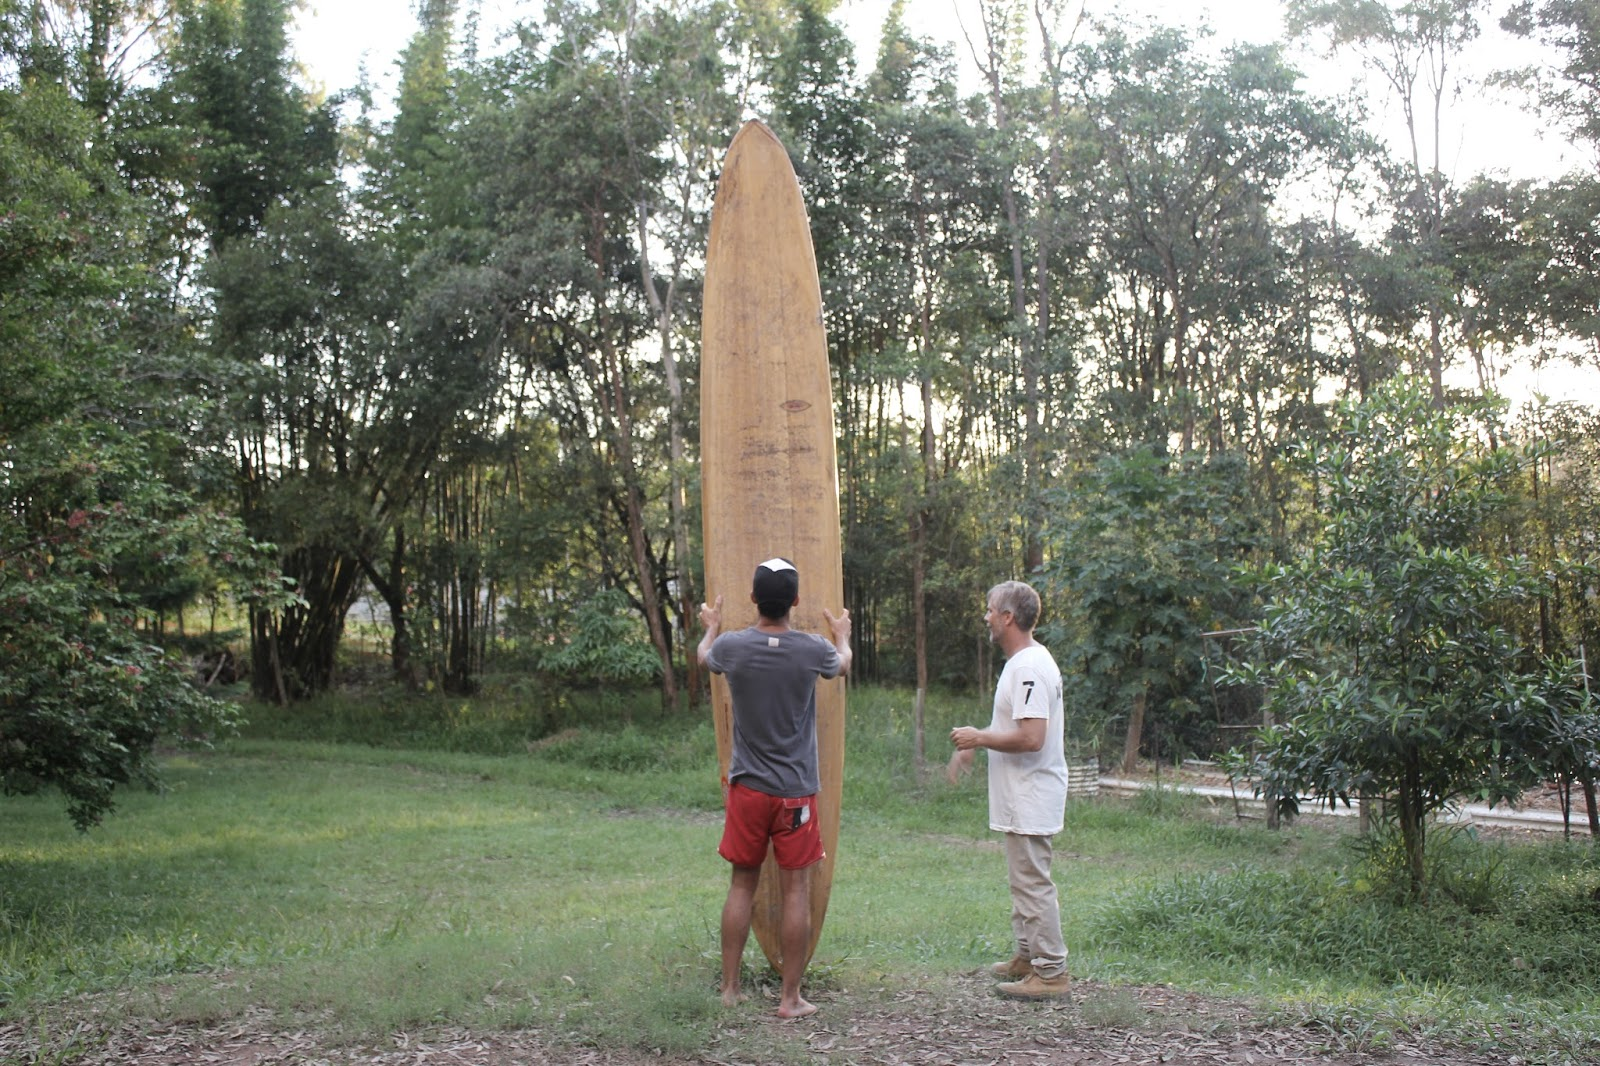 16-03-2016-australia-siebert-surfboards-11